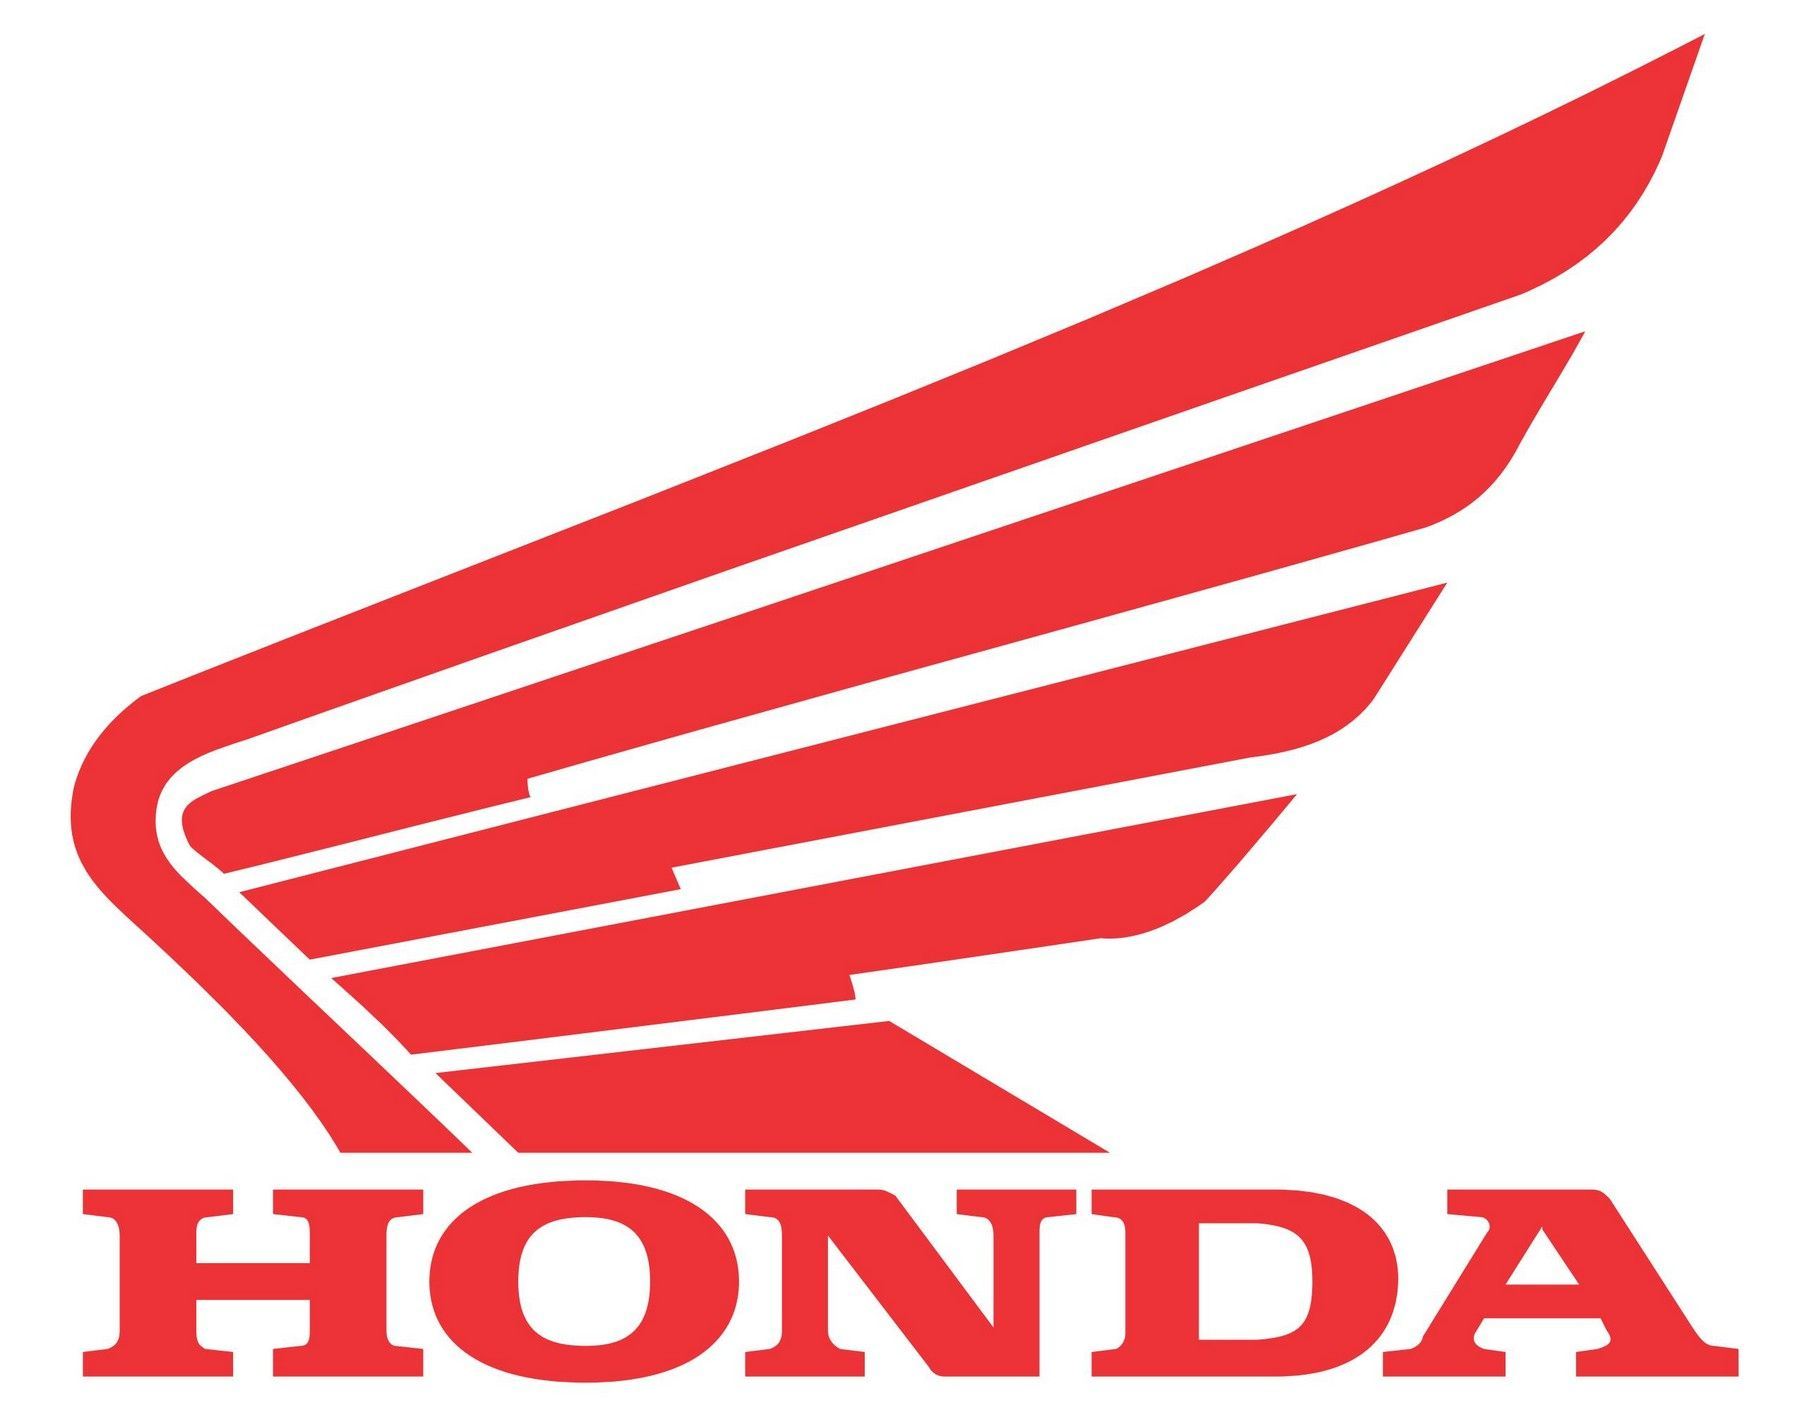 honda motorcycle logo ai pdf vector eps free download logo